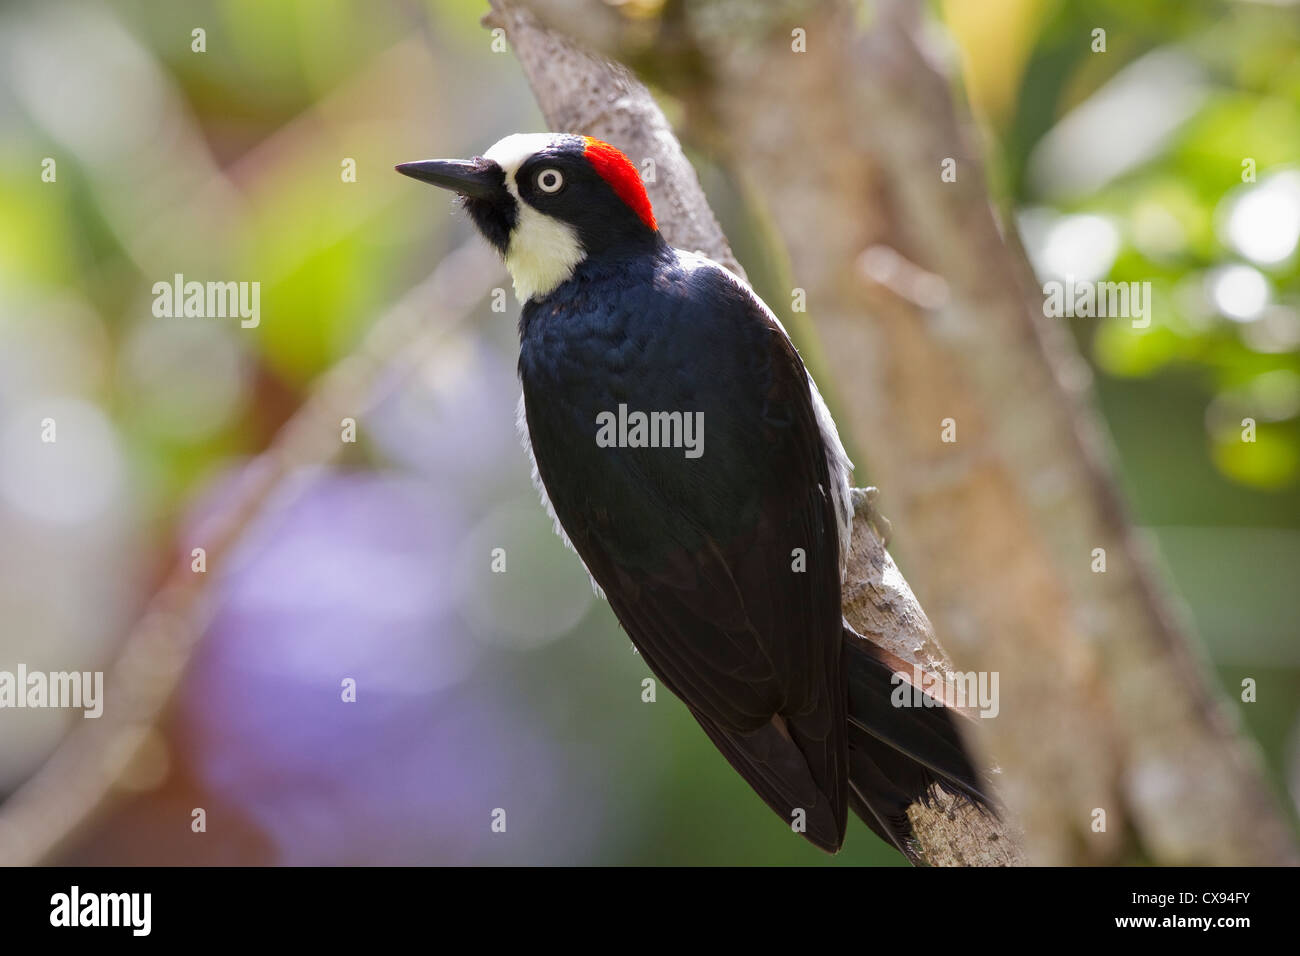 Acorn Woodpecker (Melanerpes formicivorus) perched on branch at Savegre Mountain Lodge, Costa Rica. - Stock Image